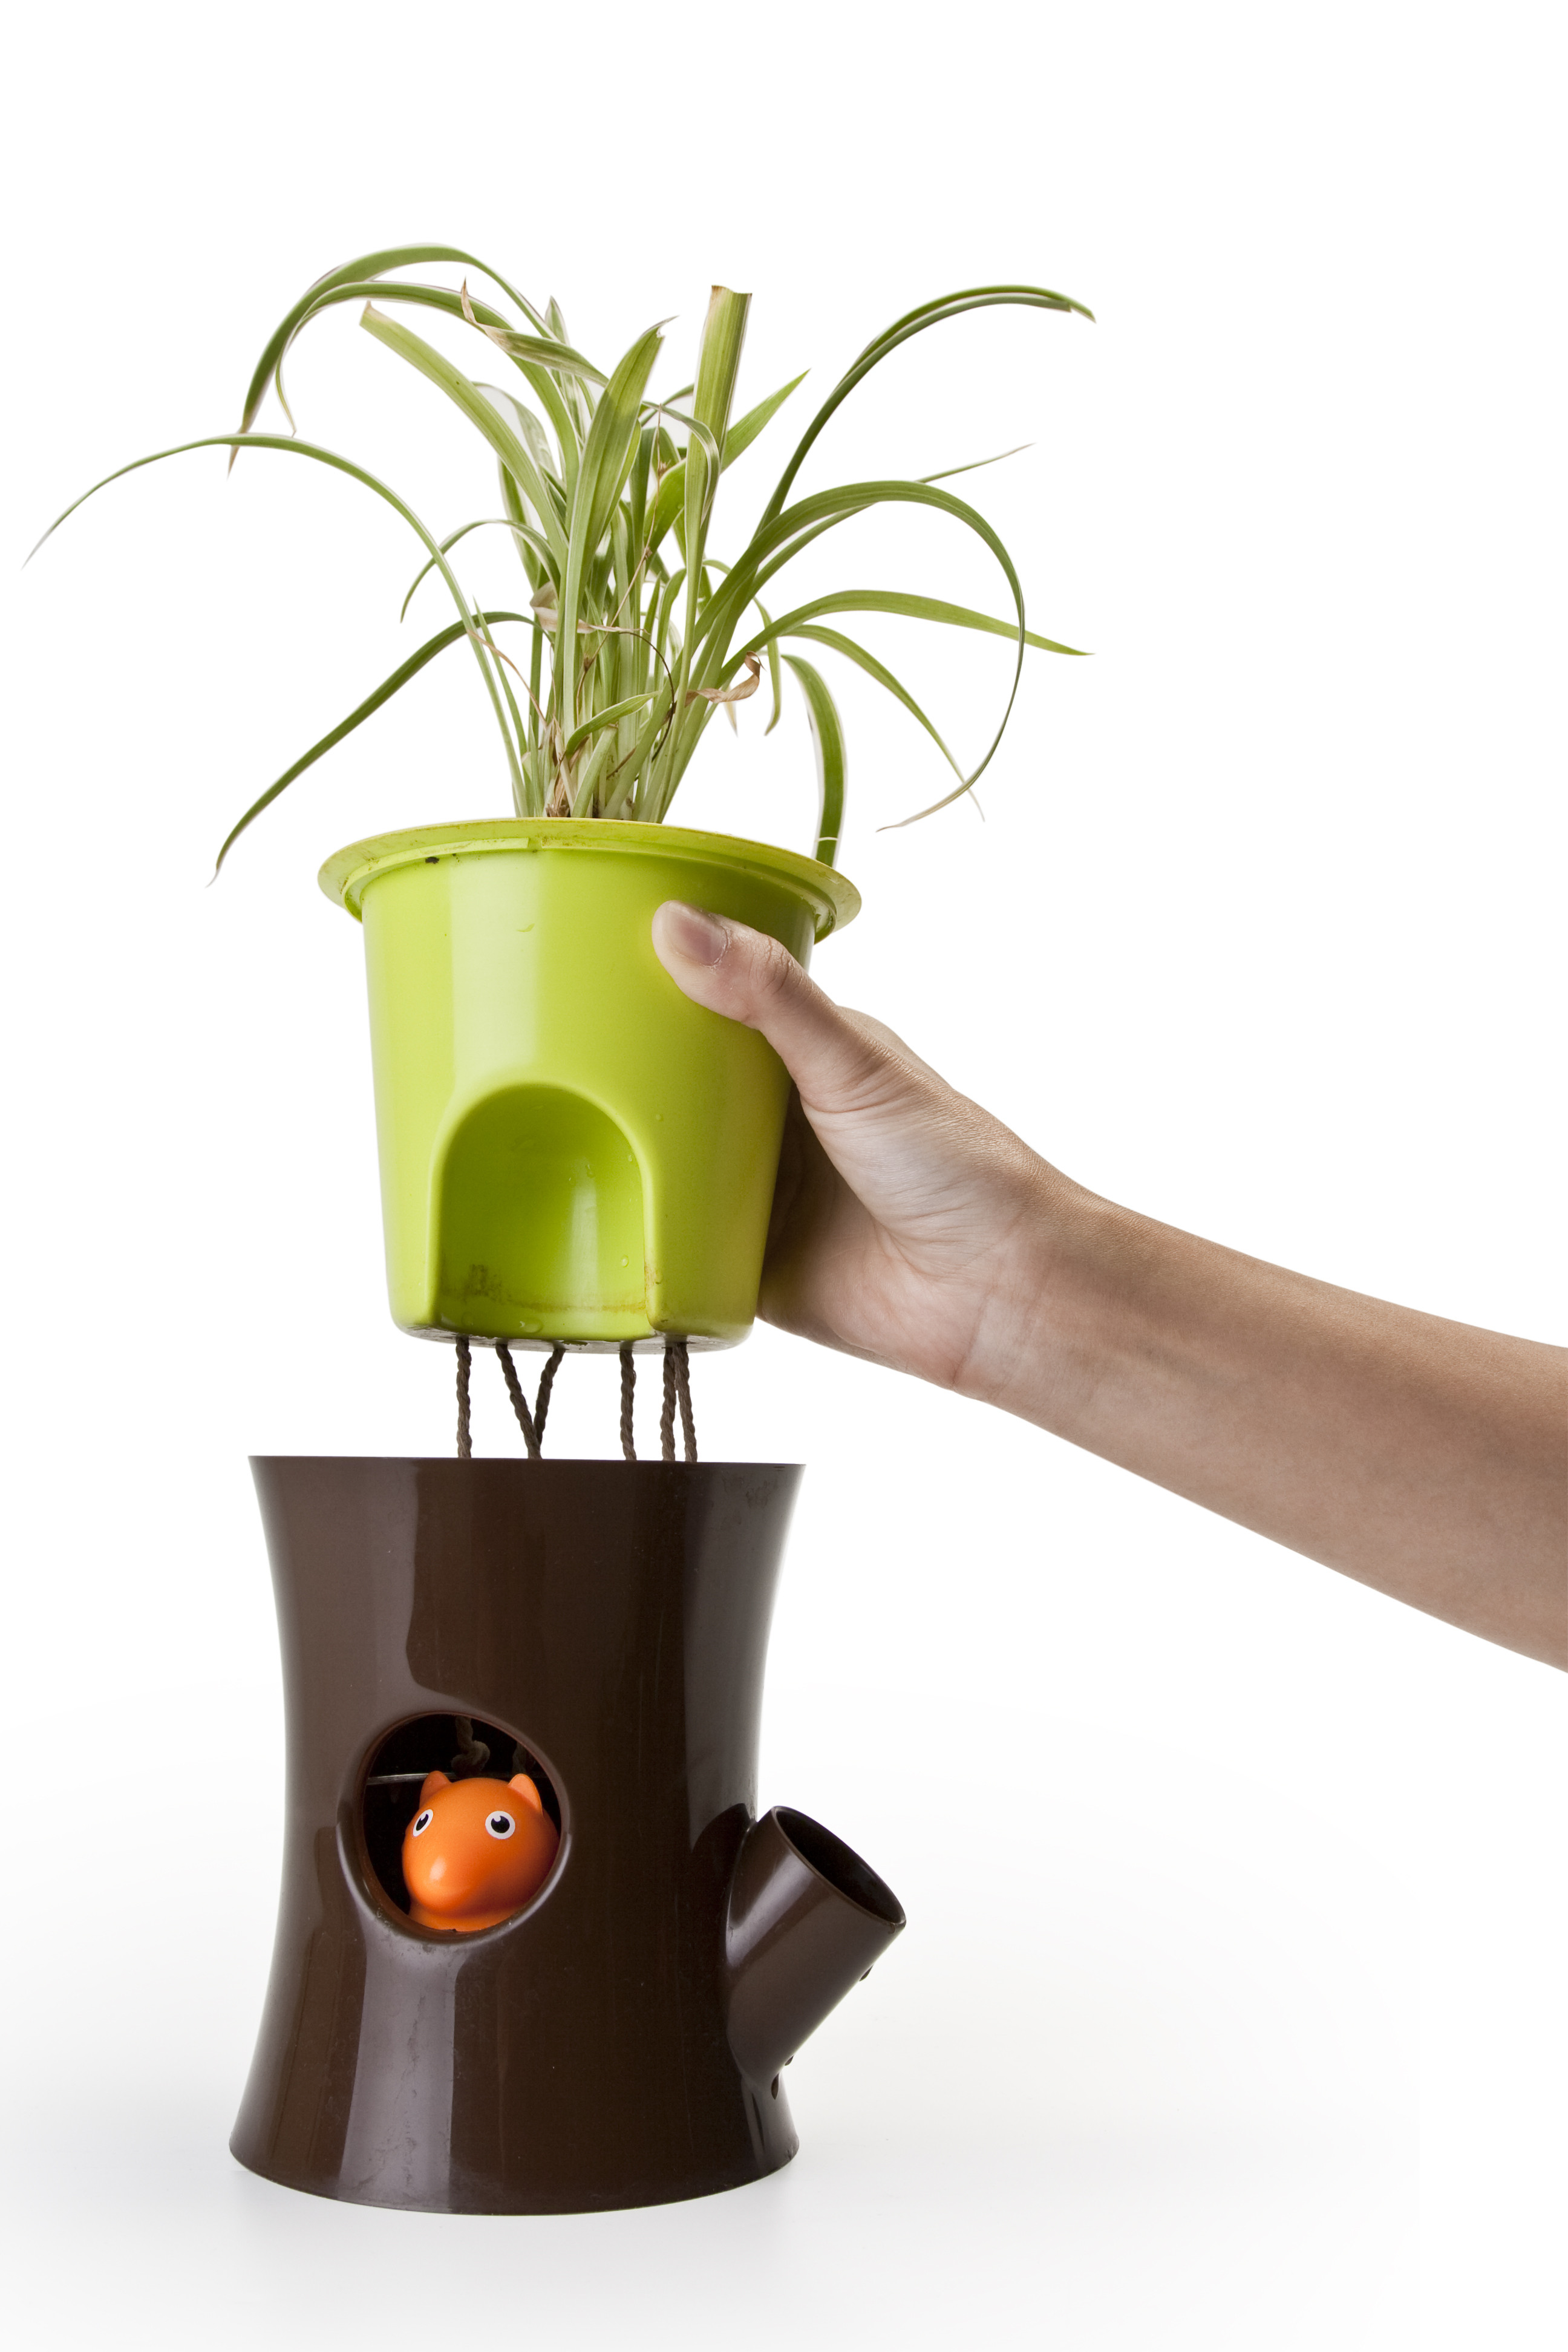 Log Amp Squirrel Self Watering Plant Pot By Qualy Brown